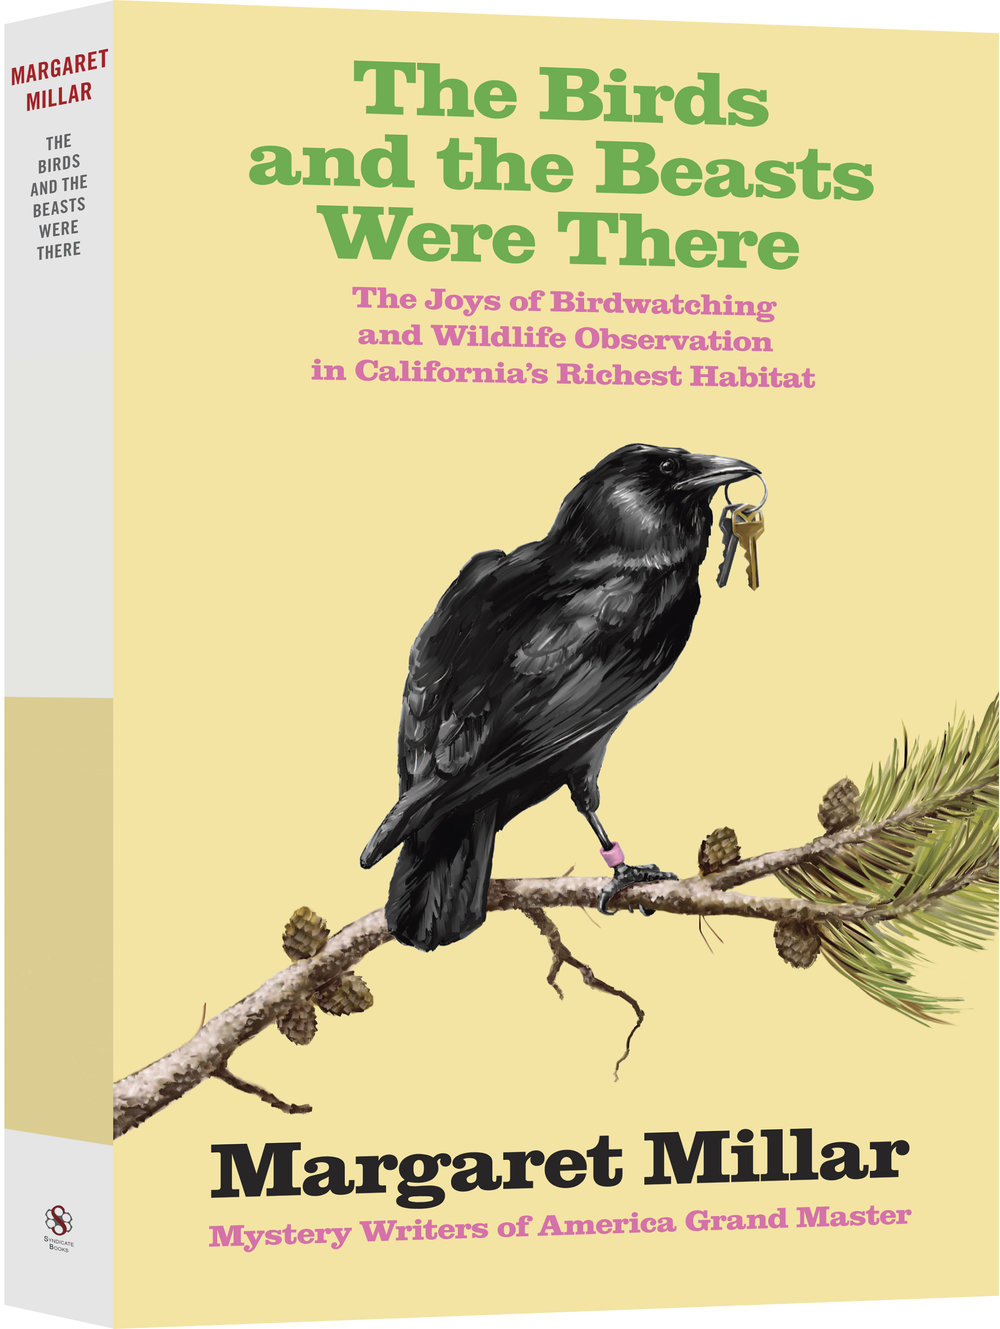 VOLUME VIIThe Birds and Beasts Were There - Publishing on April 10th, 2018The Birds and Beasts Were There: The Joys of Birdwatching and Wildlife Observation in California's Richest Habitat